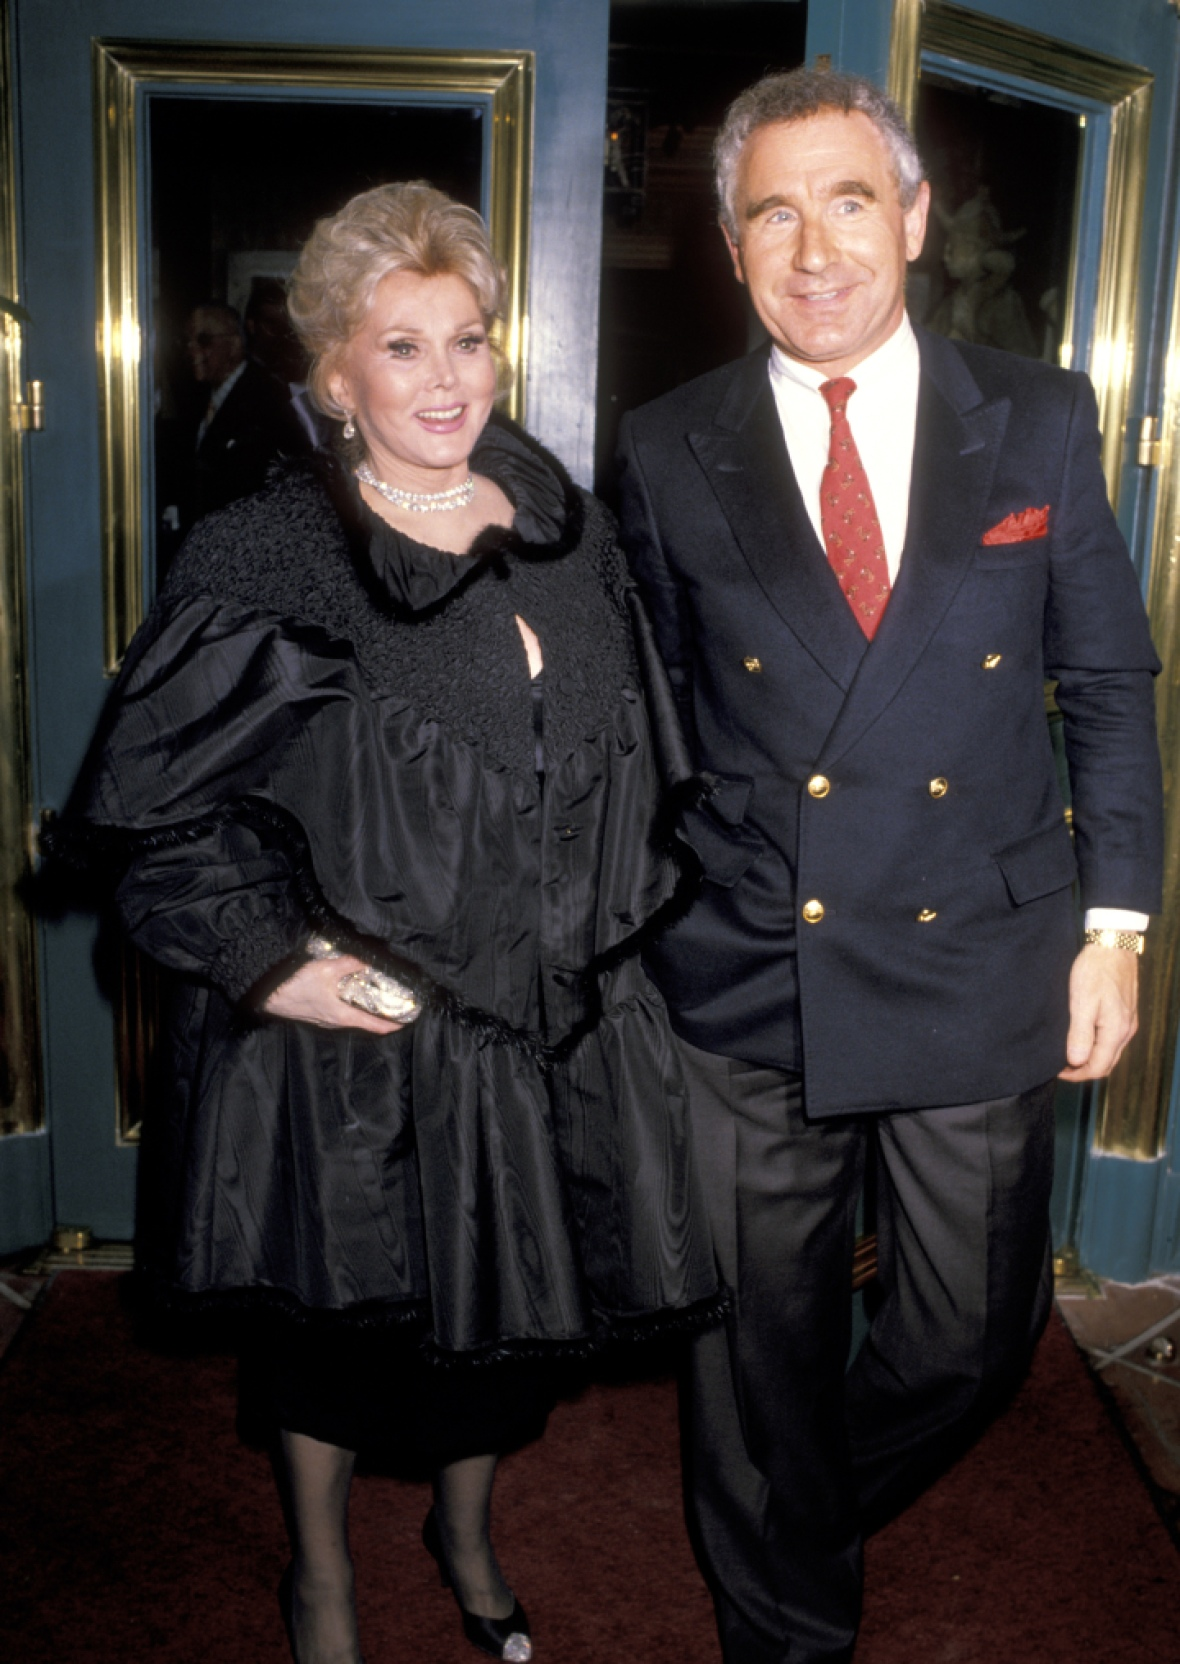 zsa zsa gabor husband getty images